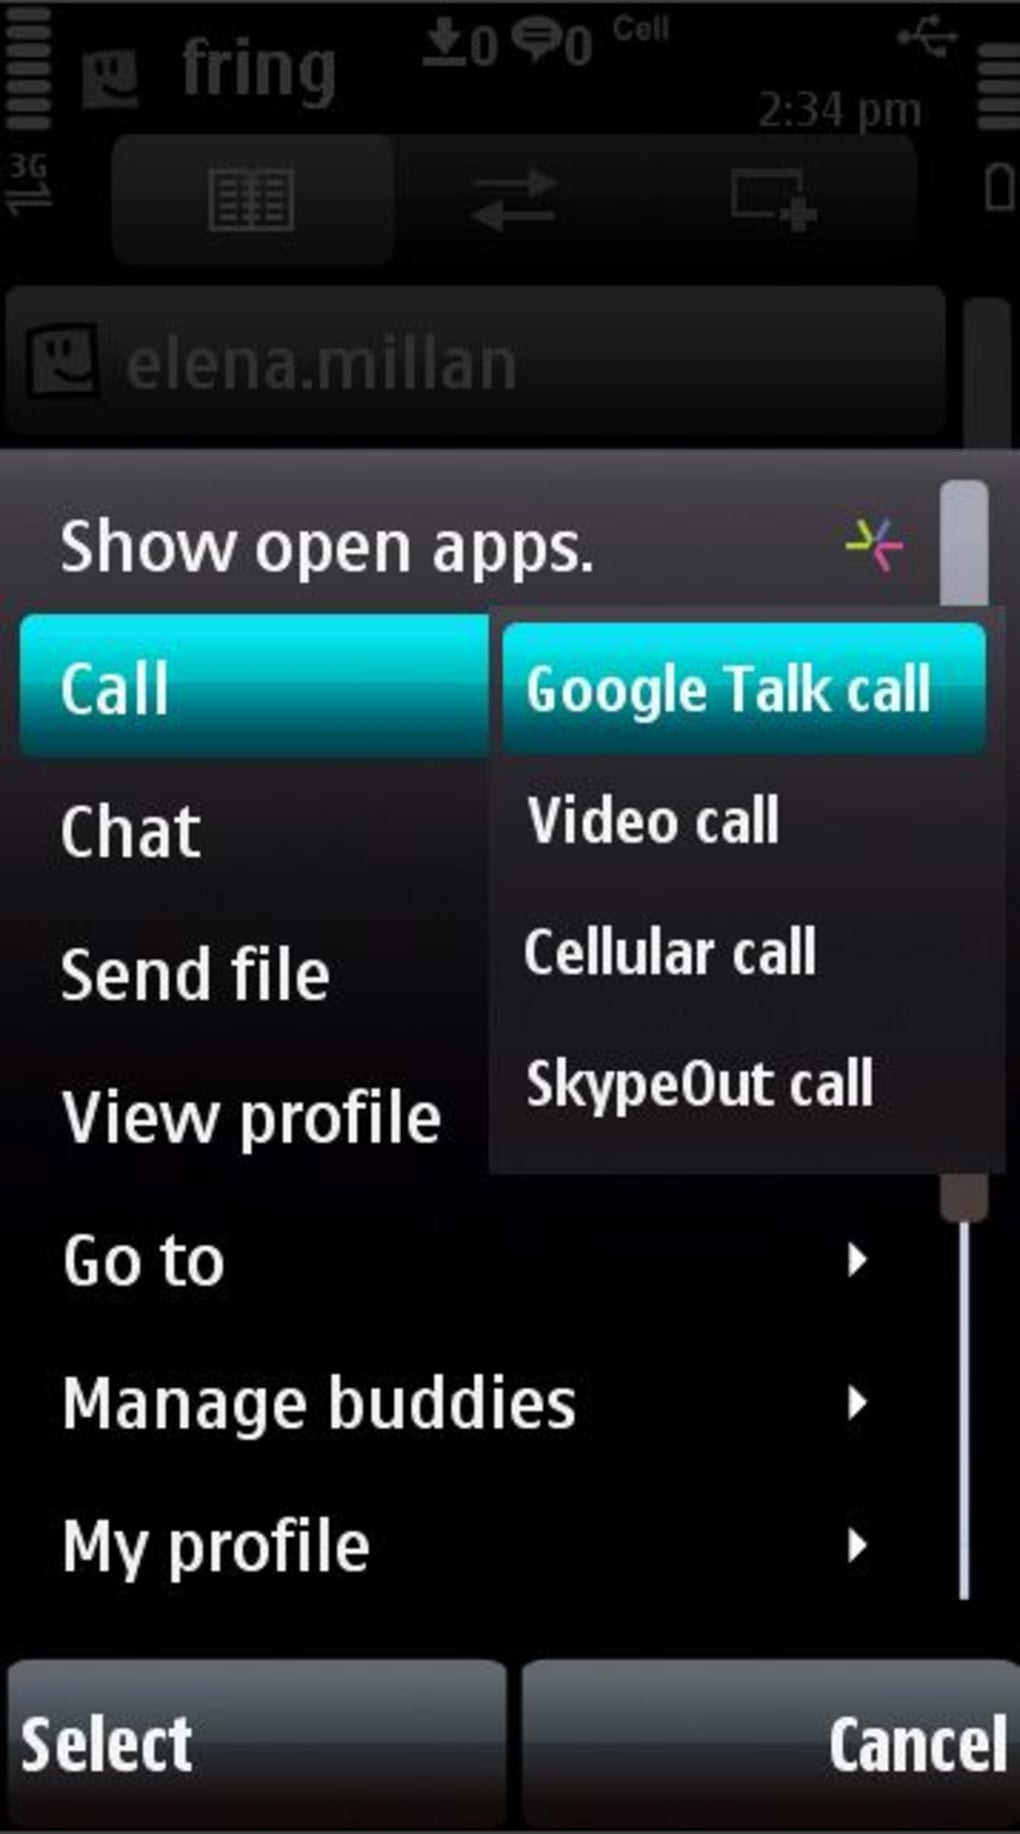 Download fring for nokia e72 and more symbian s60 devices and.